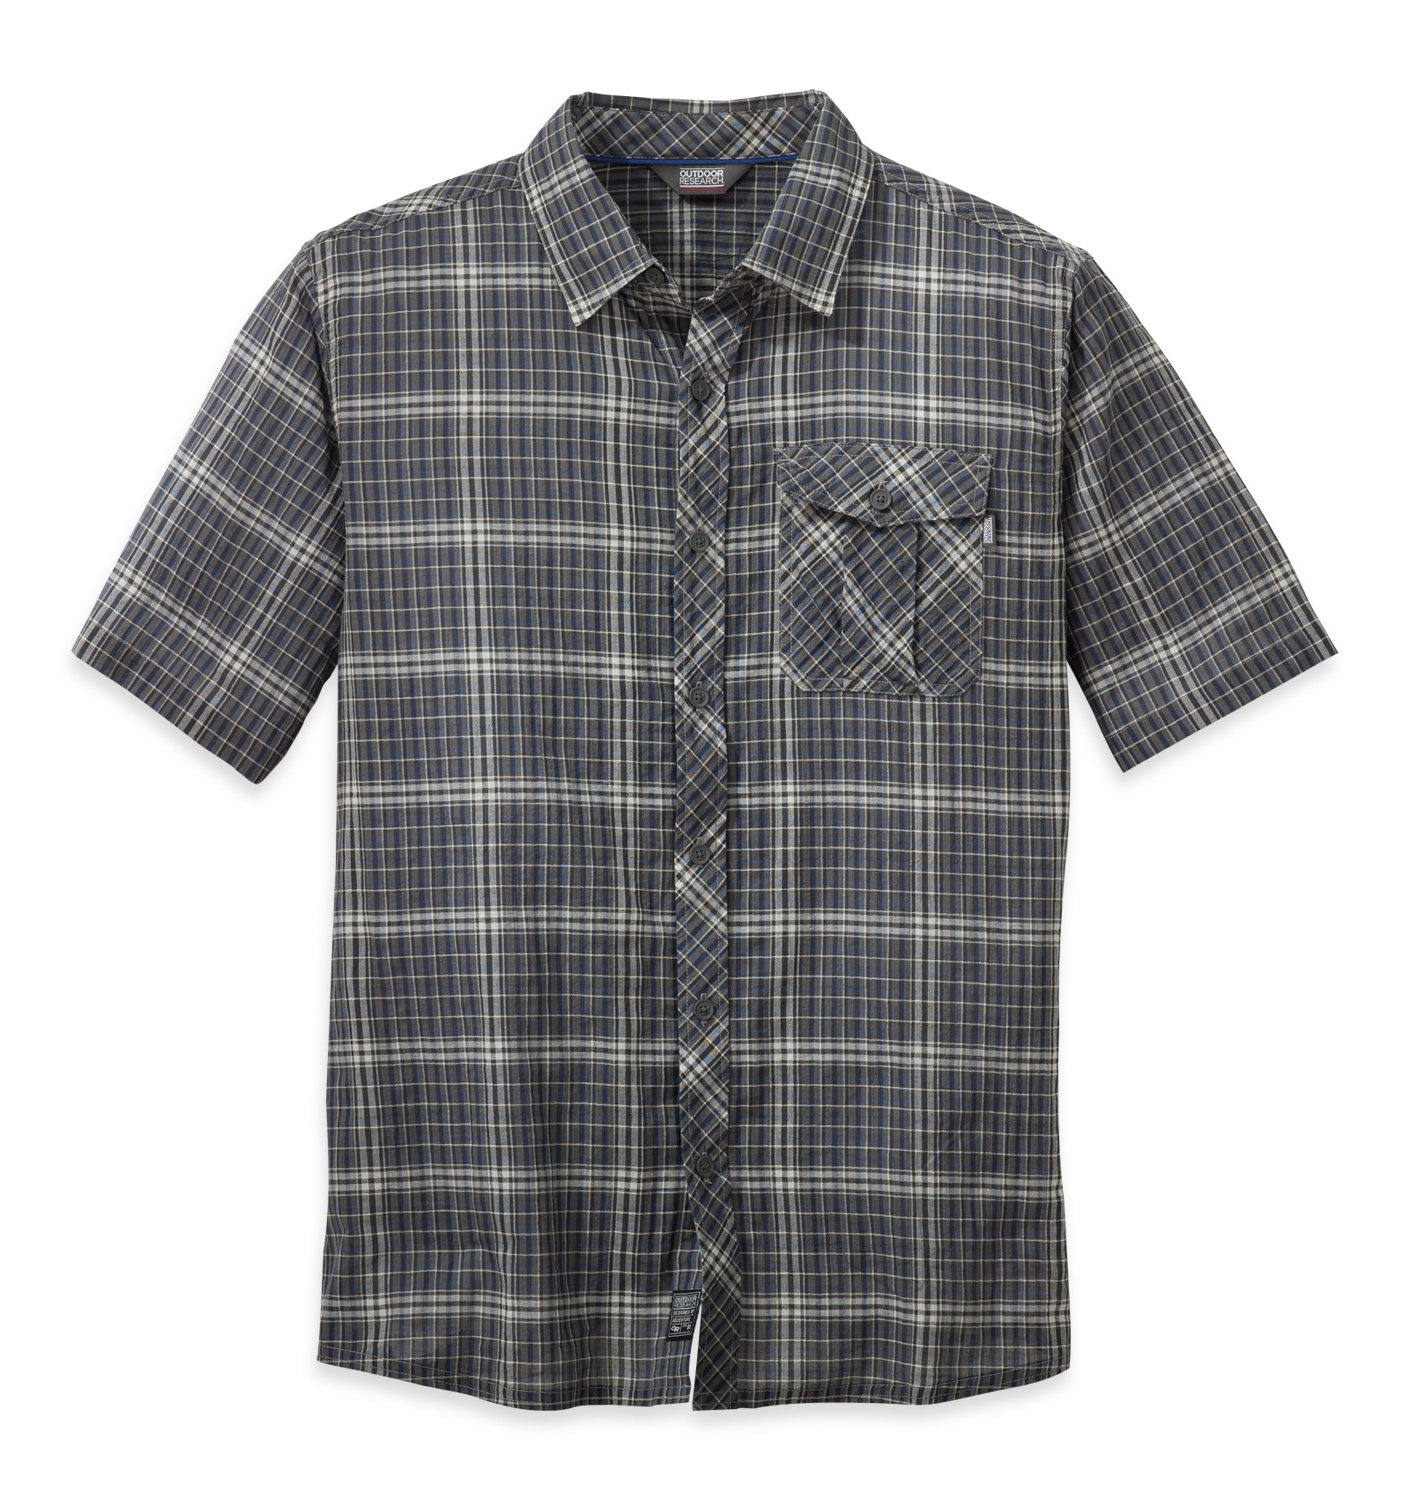 Outdoor Research Jinx S/S Shirt